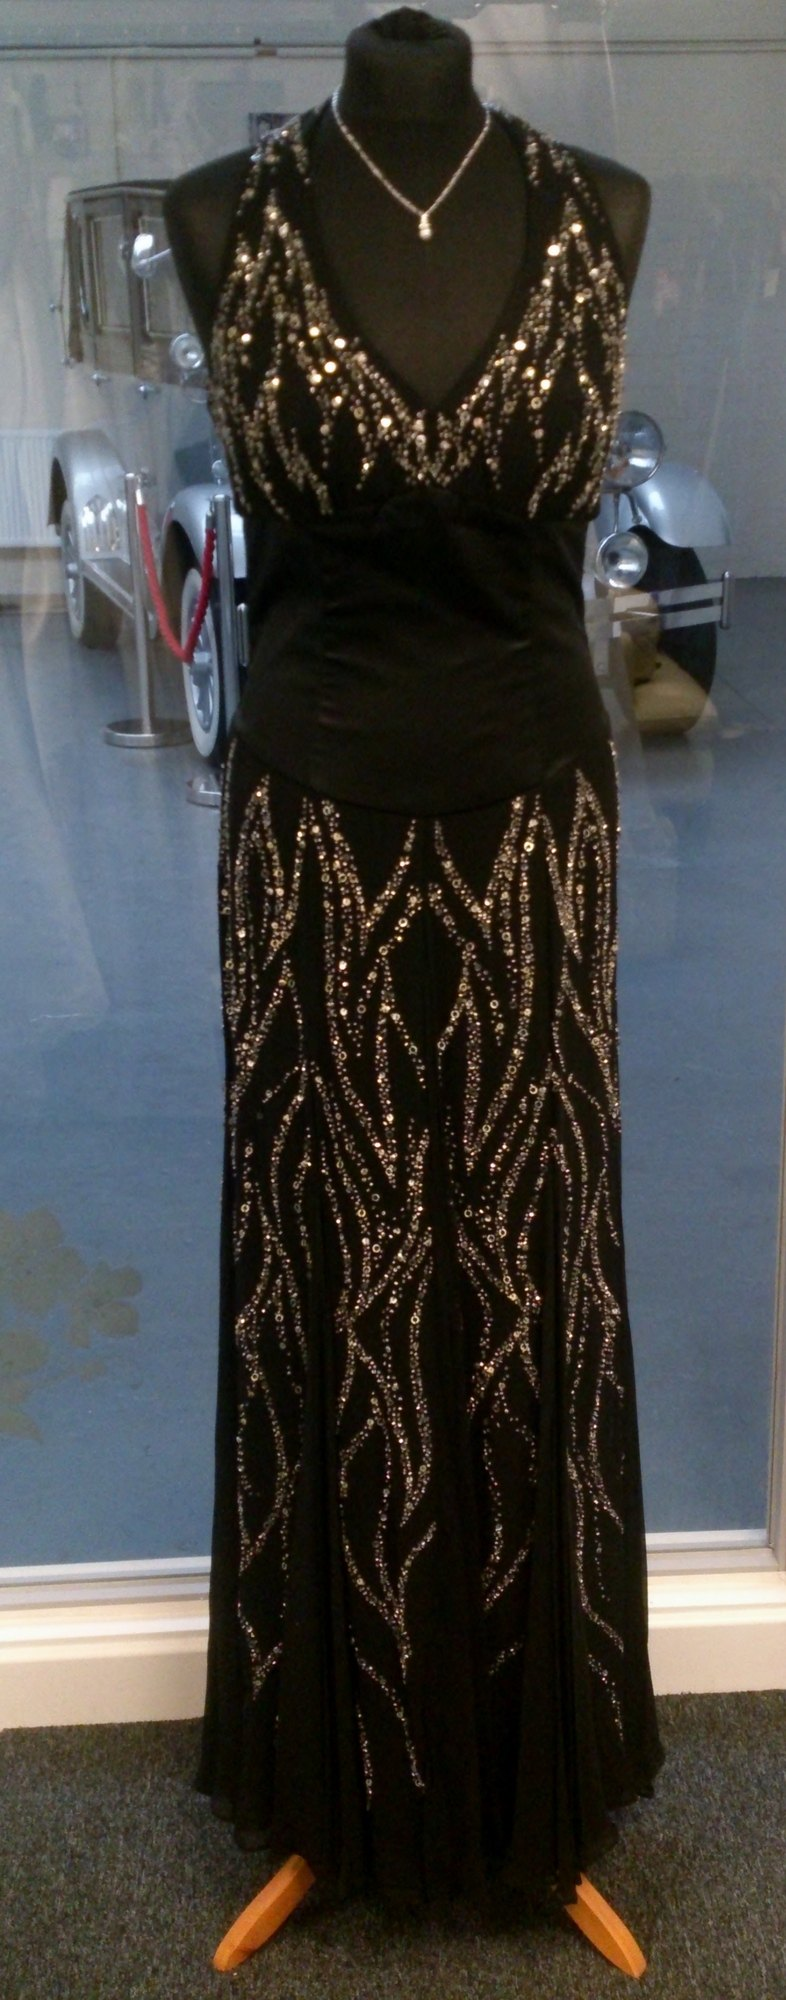 Stunning Black Halter Full Length Dress - Size 12 - Dynasty